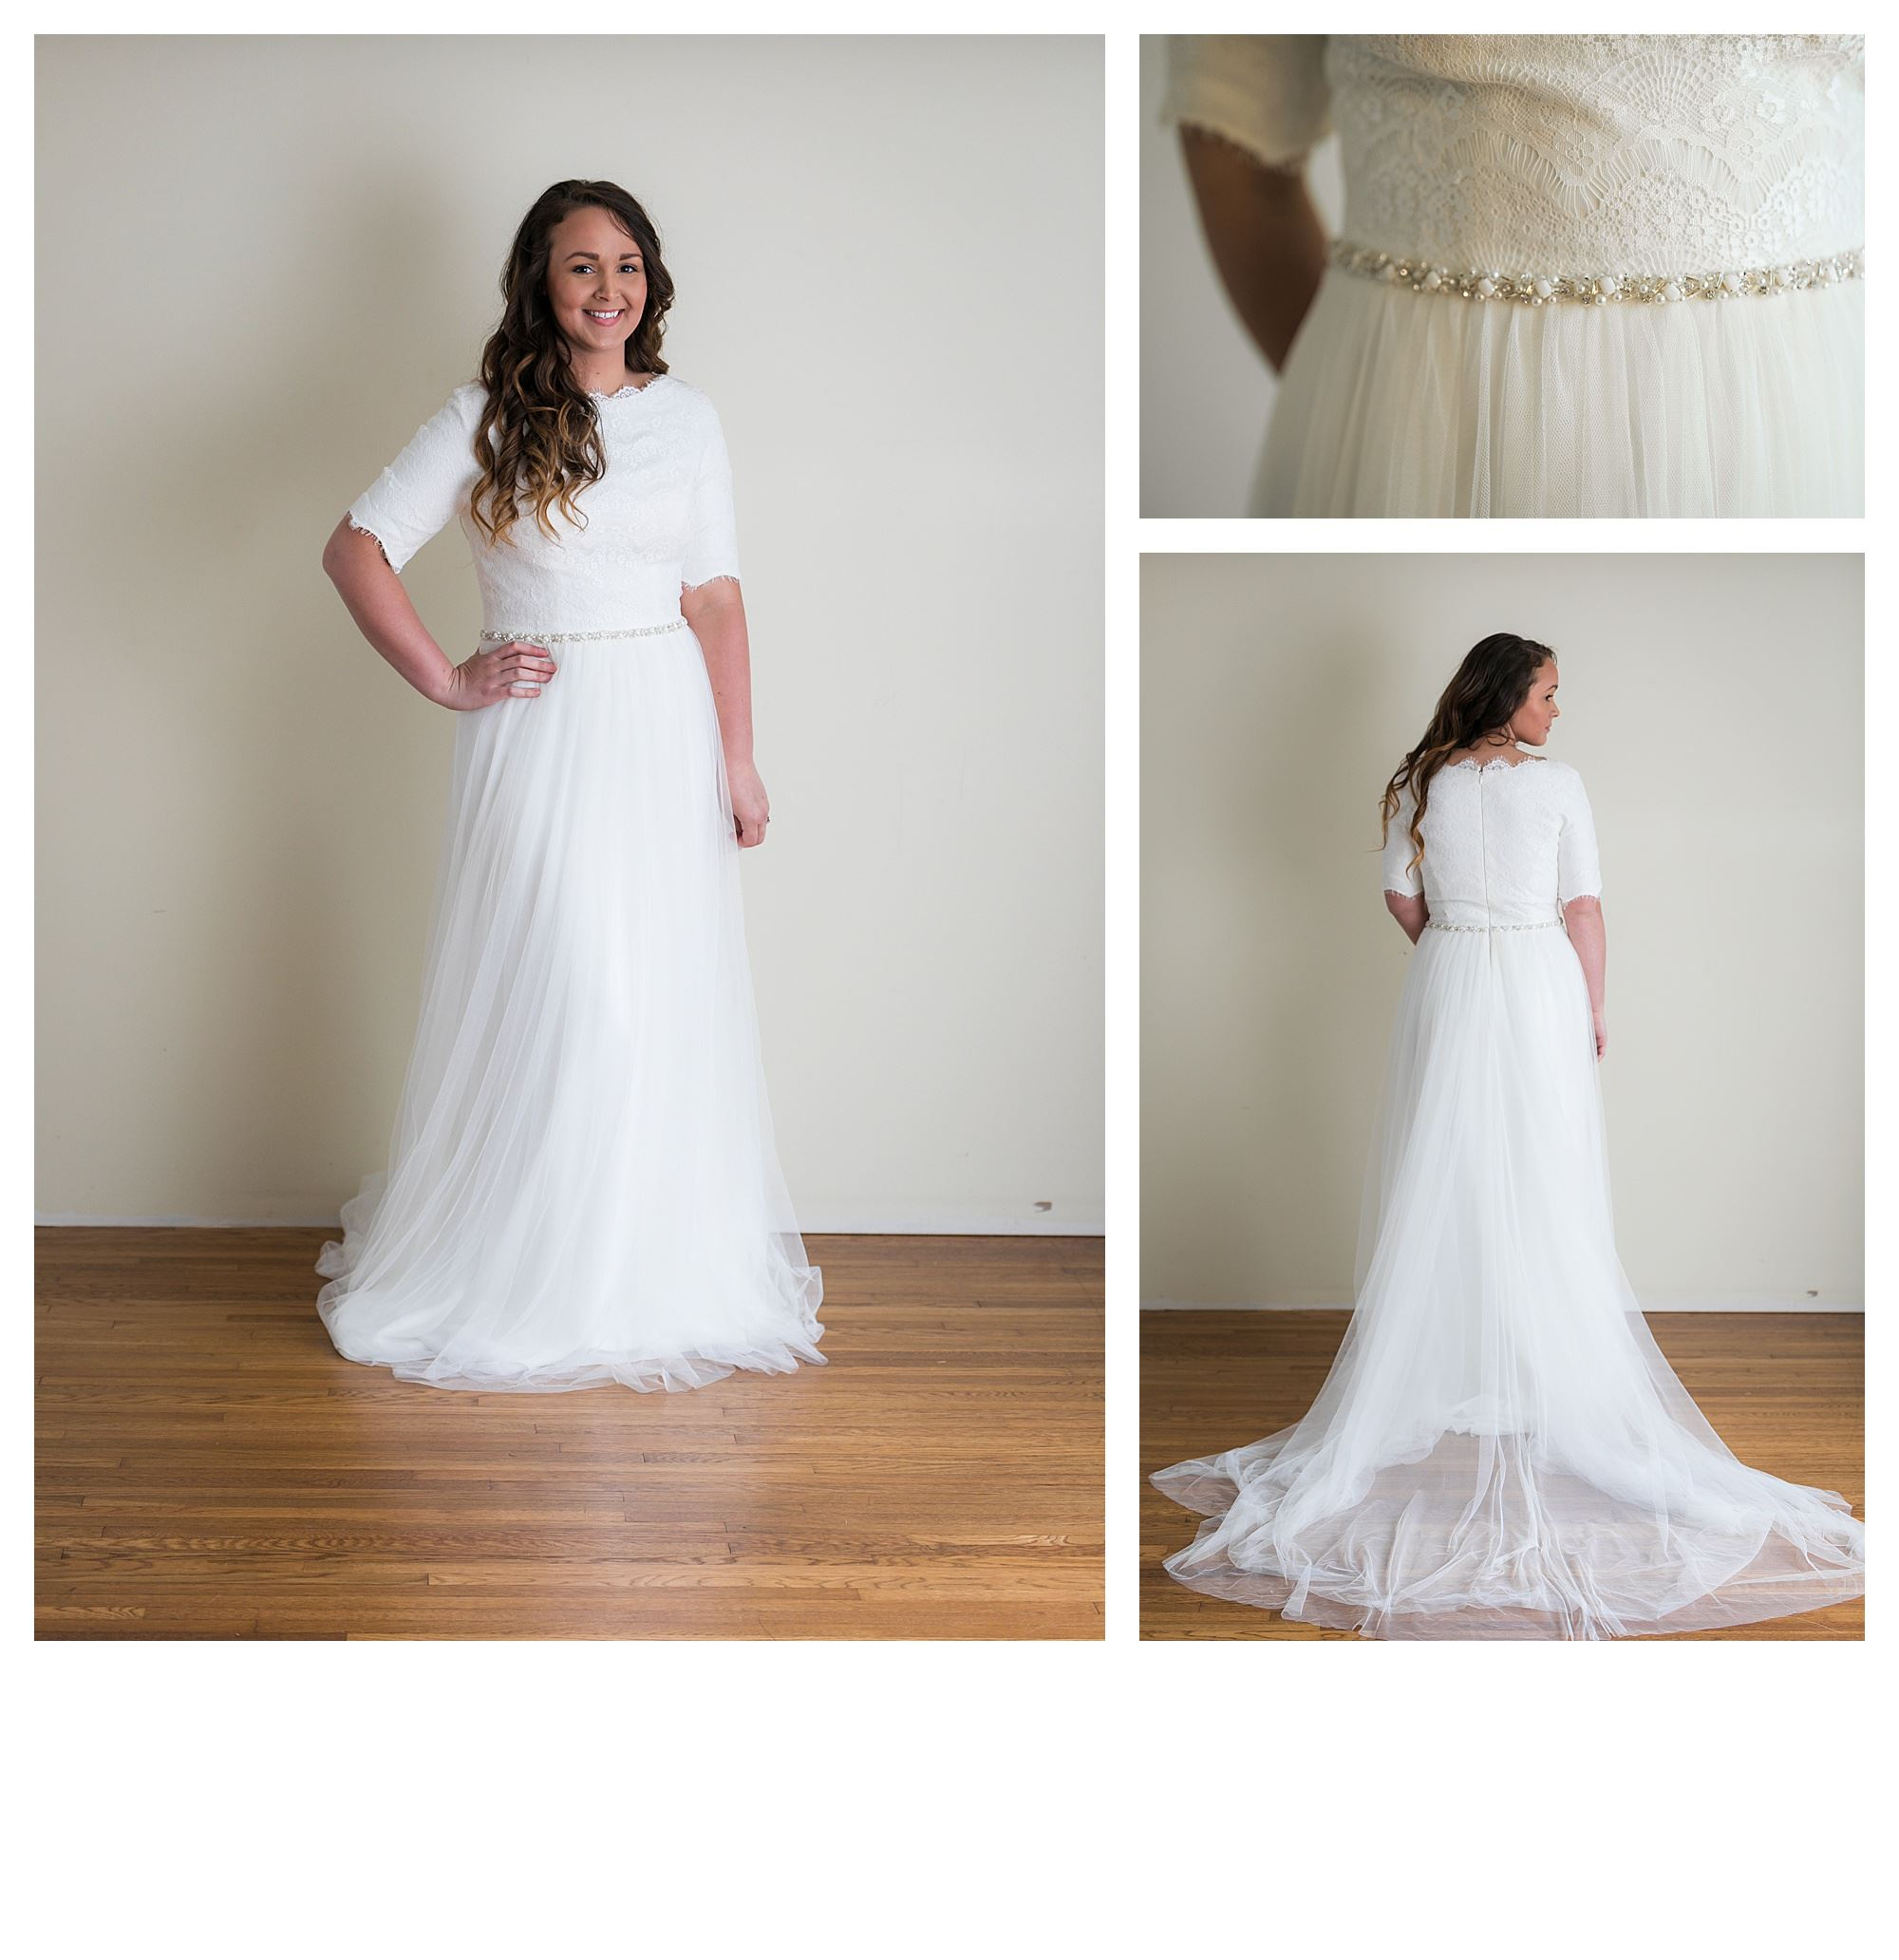 Sloane - Size 10 - Ivory - Originally priced $1199 - Sample box price $799